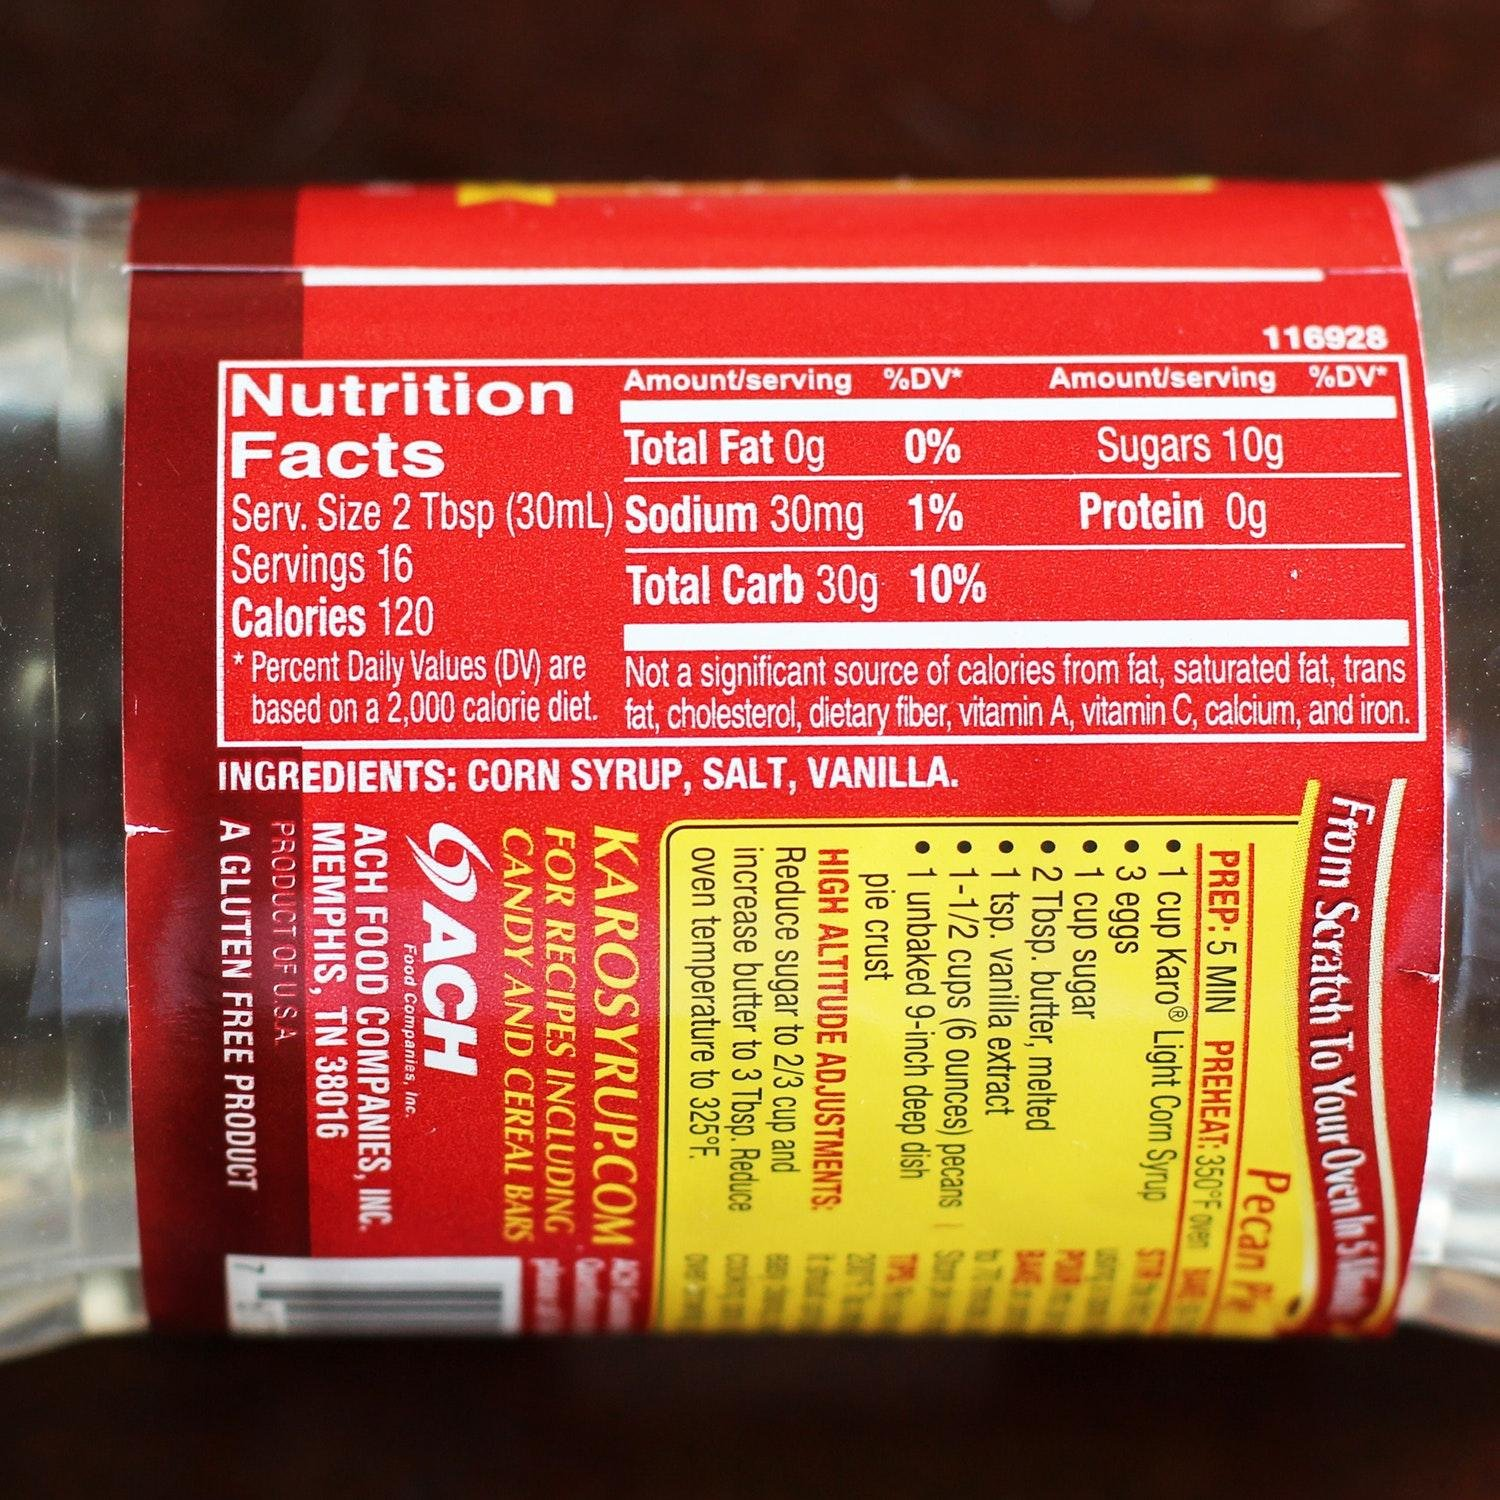 Is Glucose Syrup The Same As Fructose Corn Syrup?